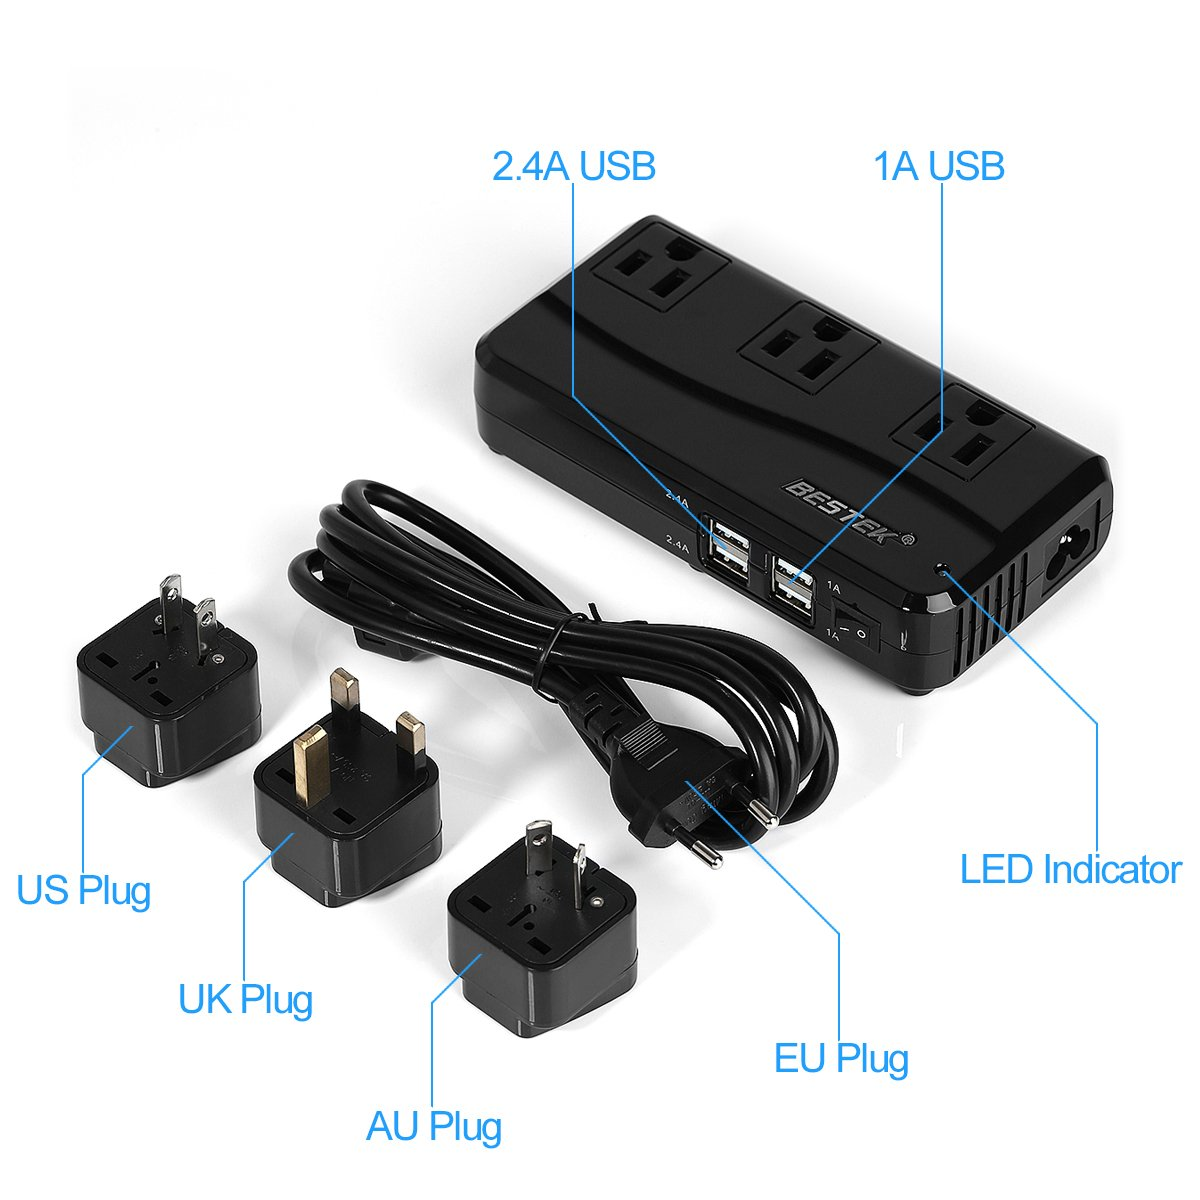 BESTEK Universal Travel Adapter 220V to 110V Voltage Converter